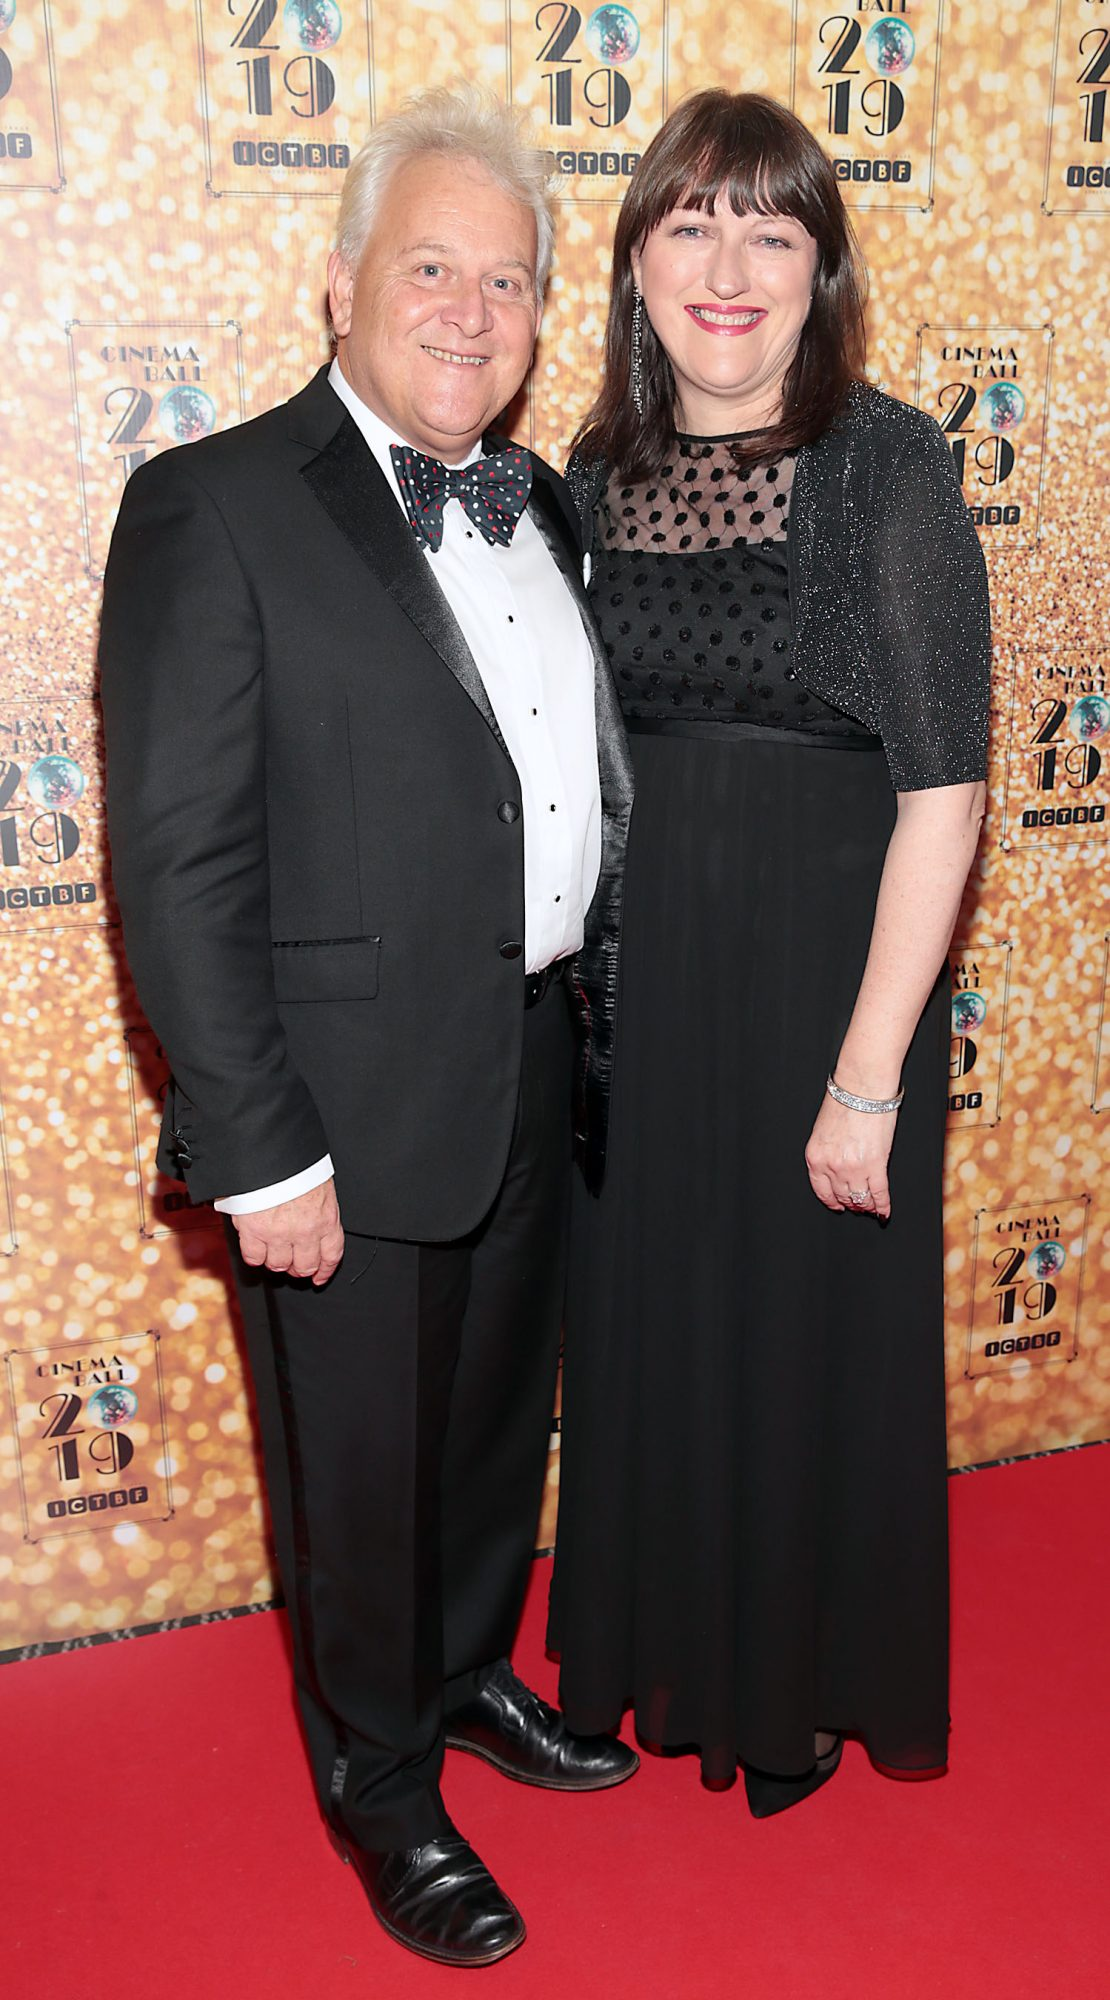 Gerry Heeley pictured at the Irish Cinema Ball 2019 in aid of the Irish Cinematograph Trade Benevolent Fund (ICTBF ) at The Shelbourne Hotel, Dublin This year's theme was the iconic 'Studio 54'. Pic: Brian McEvoy.